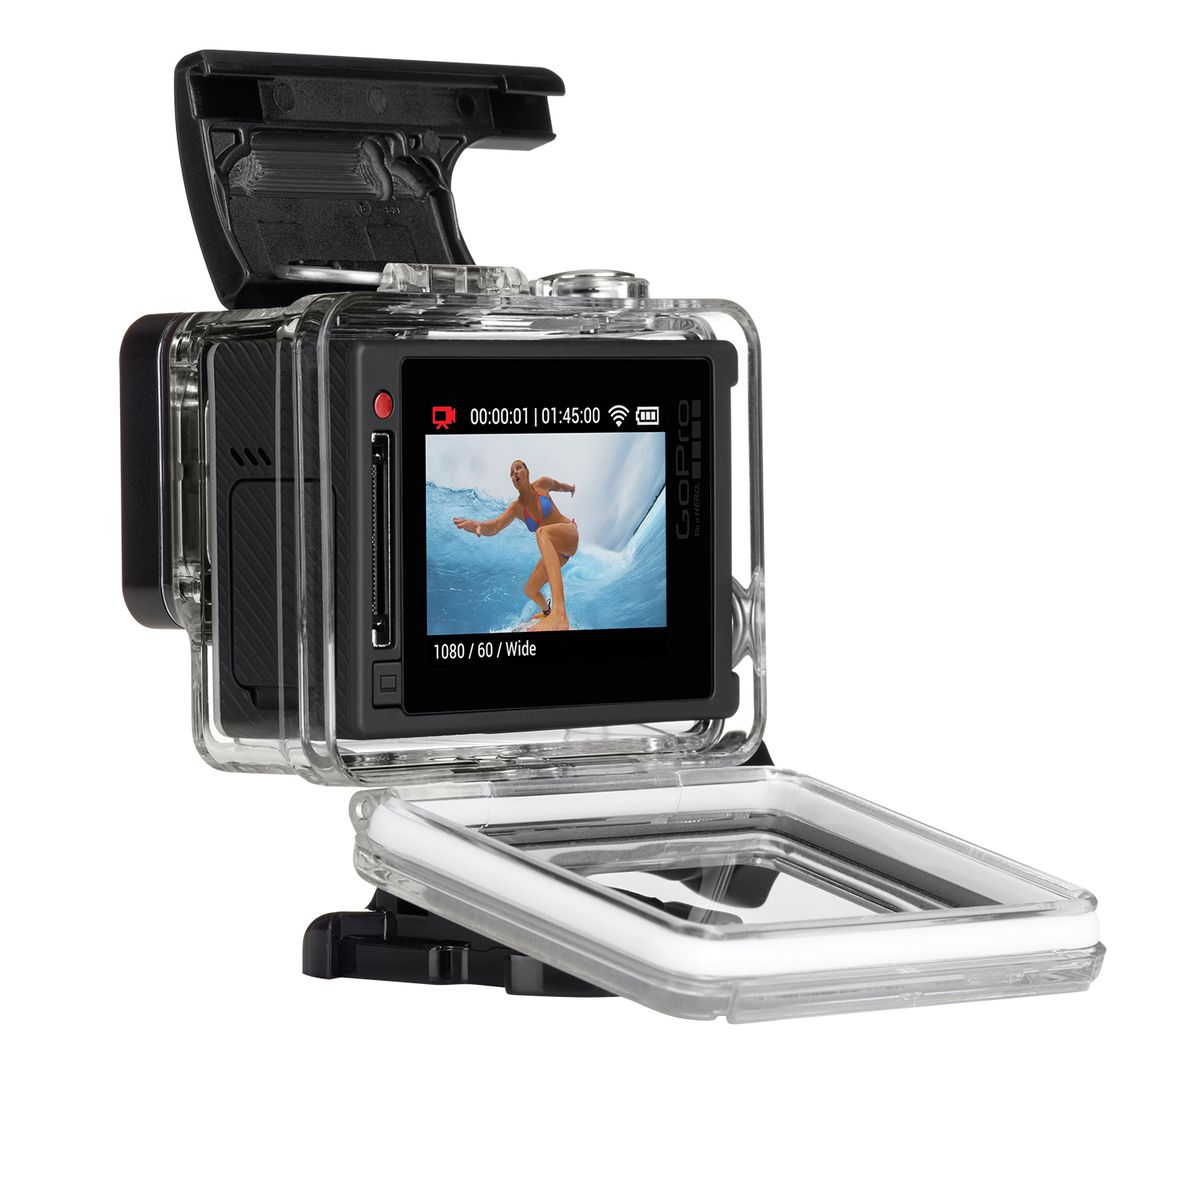 The new GoPro Hero4 Silver.